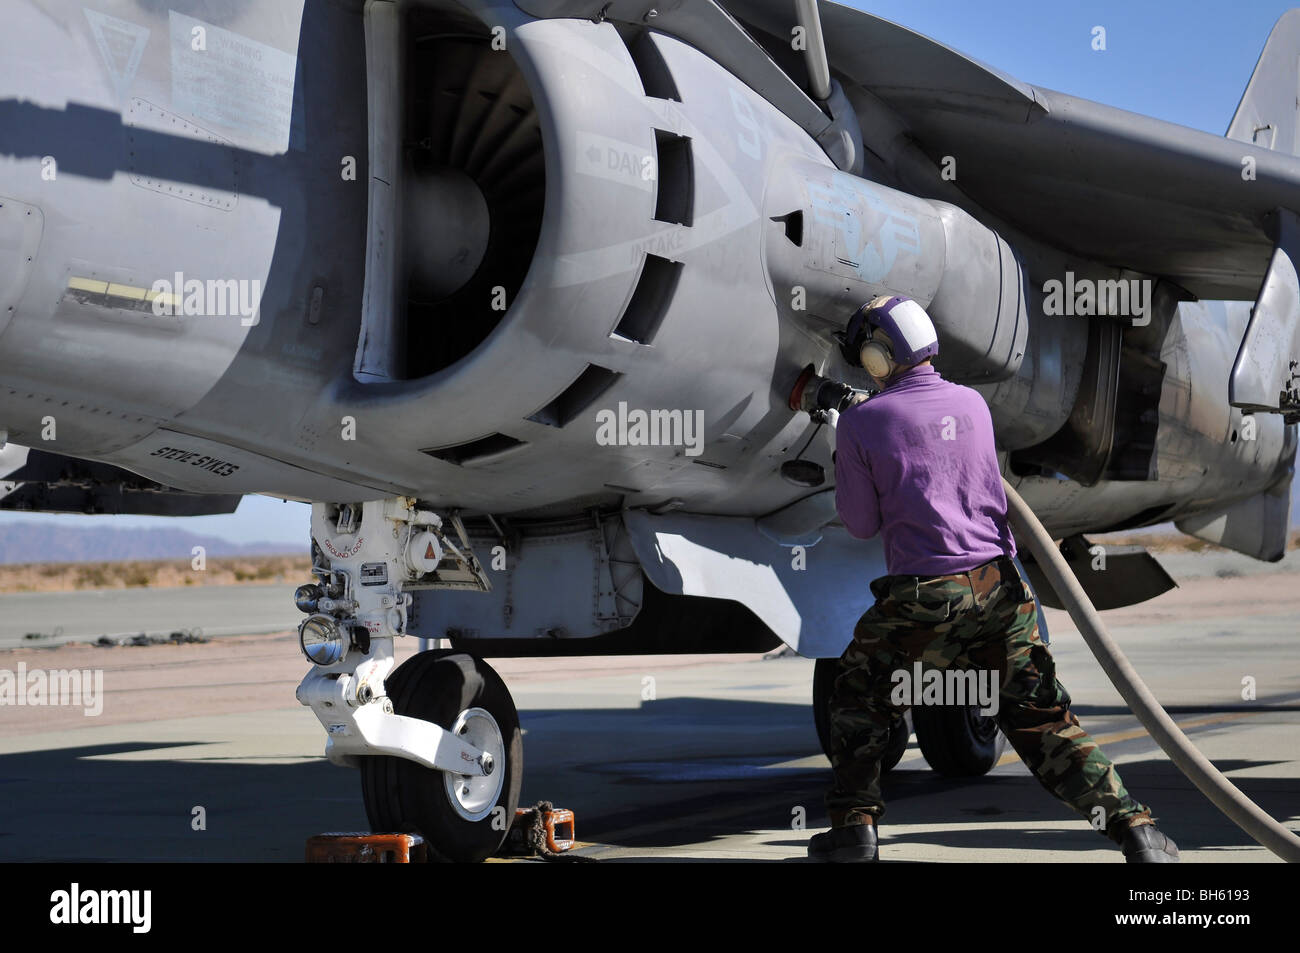 Aviation fuel technician attaches a fuel line to an AV-8B Harrier. - Stock Image